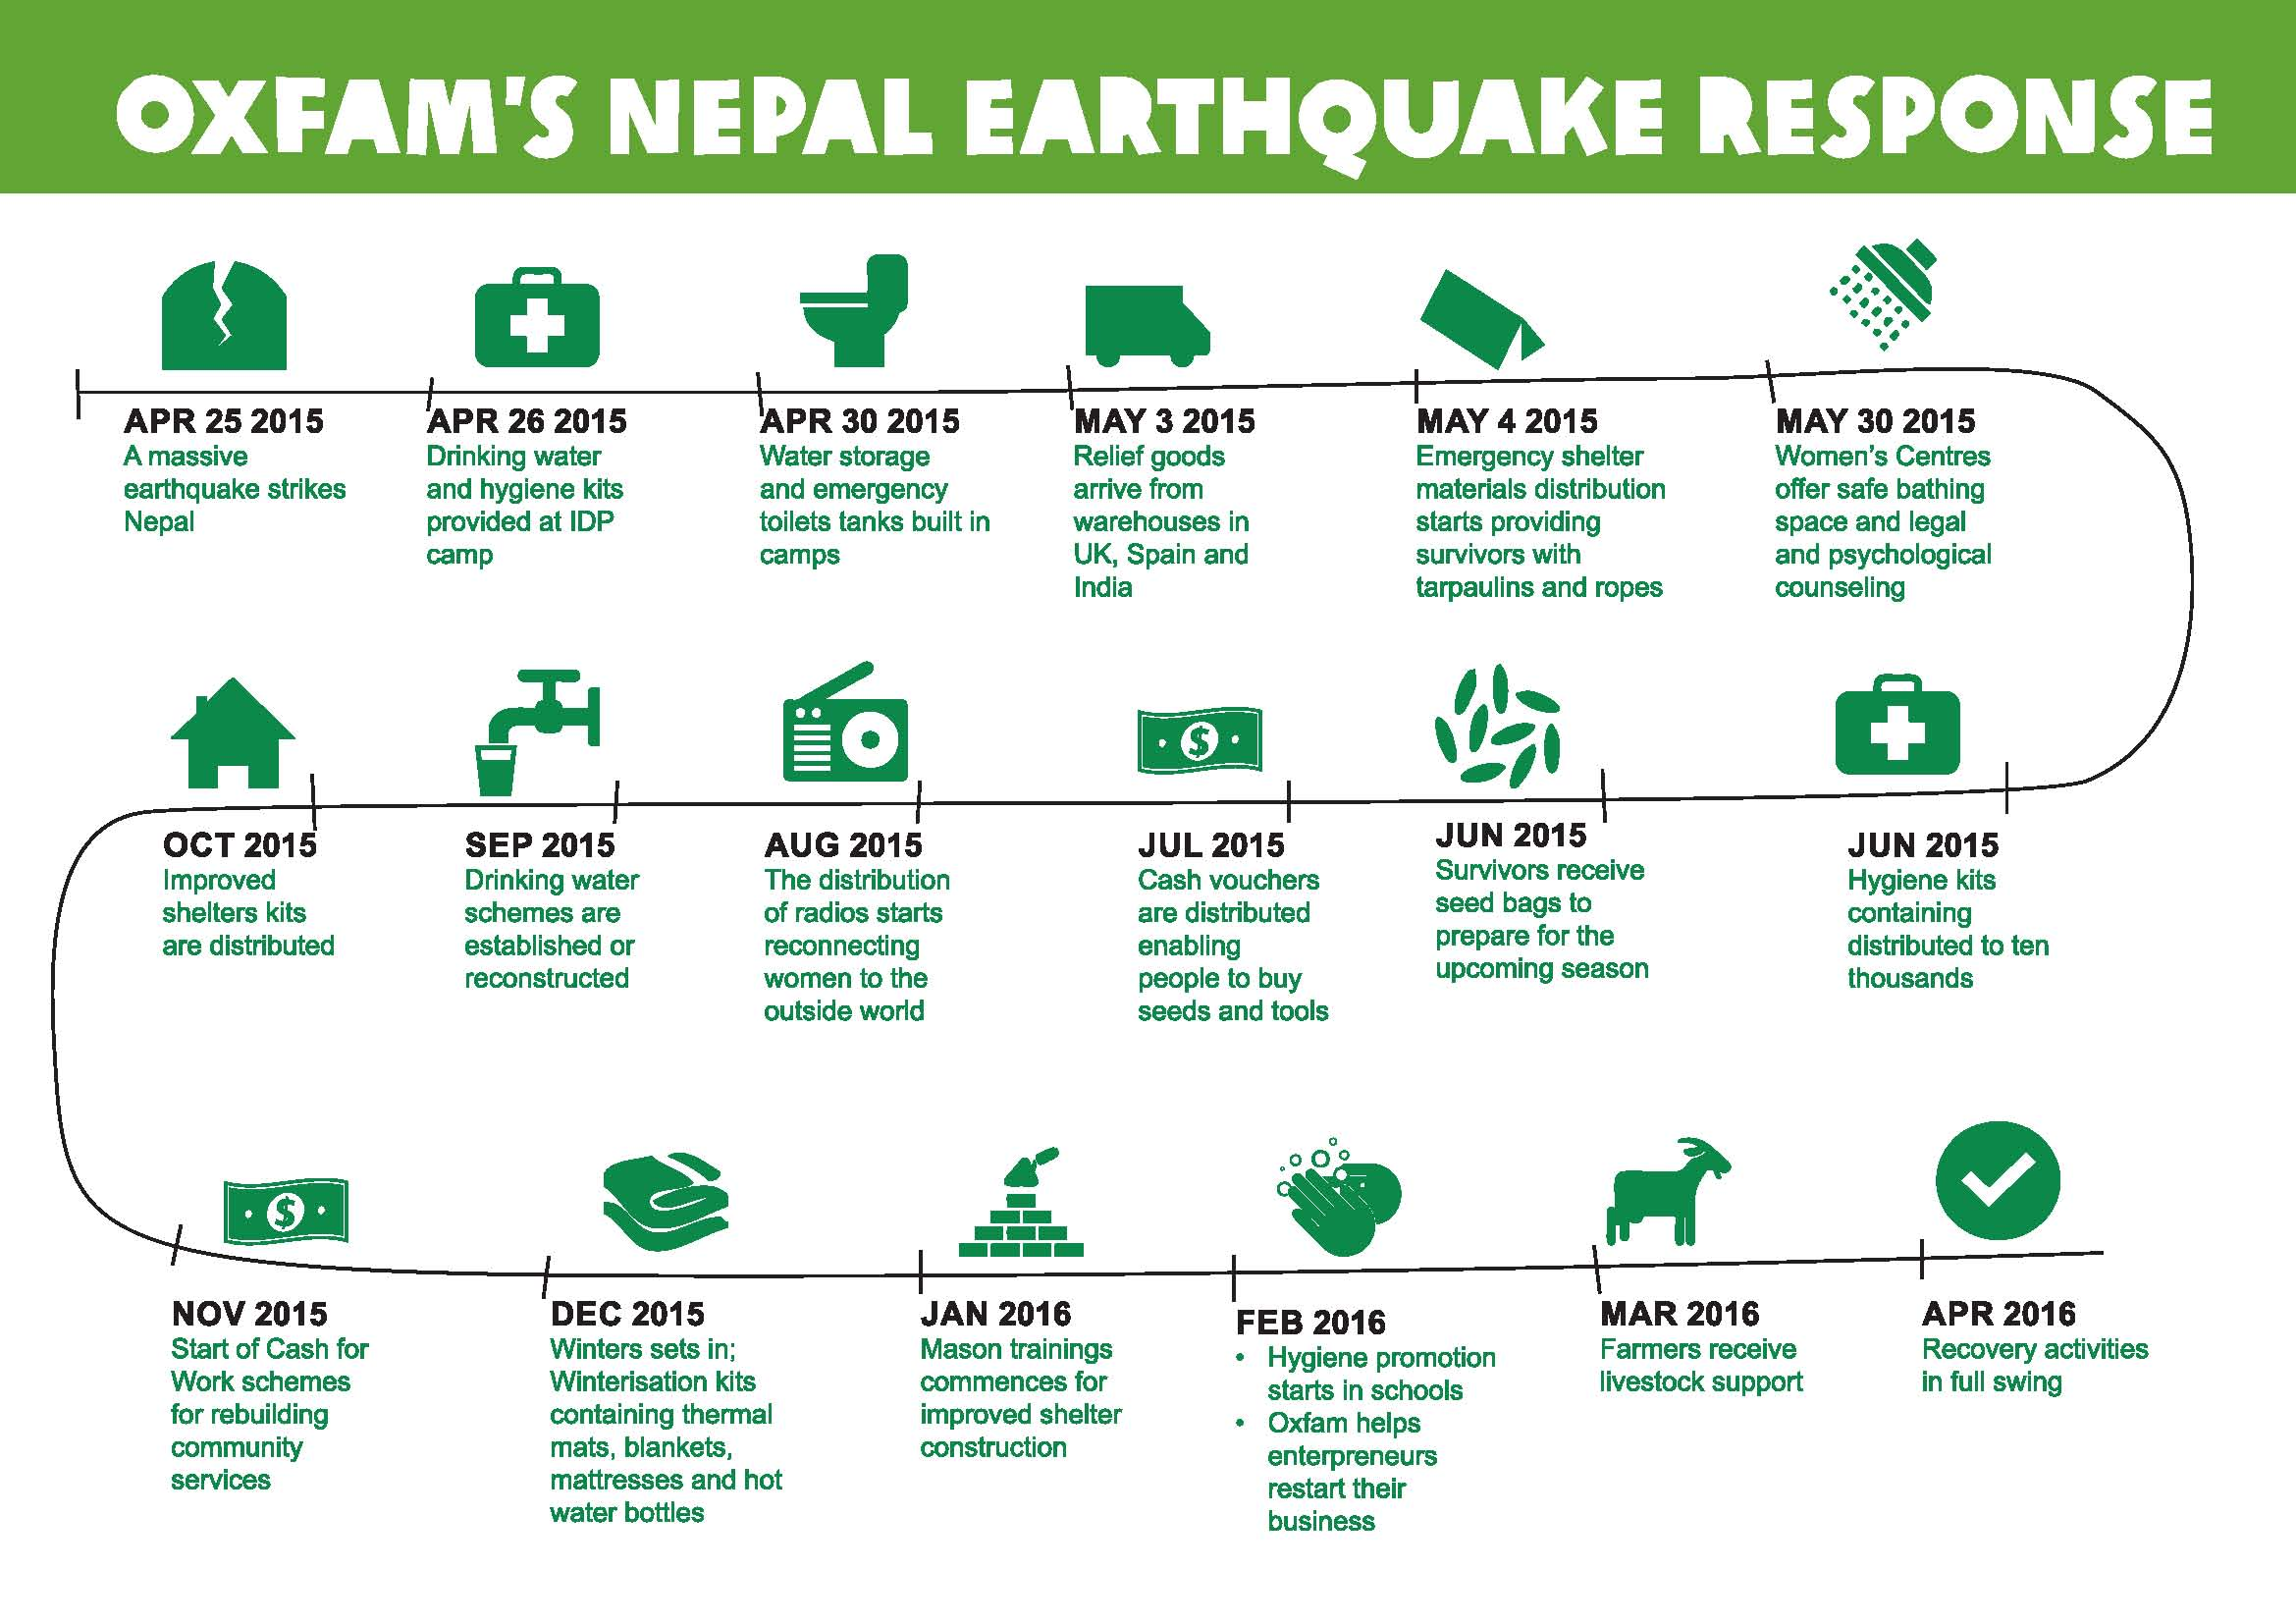 Timeline of Oxfam earthquake response - Credit: Oxfam in Nepal